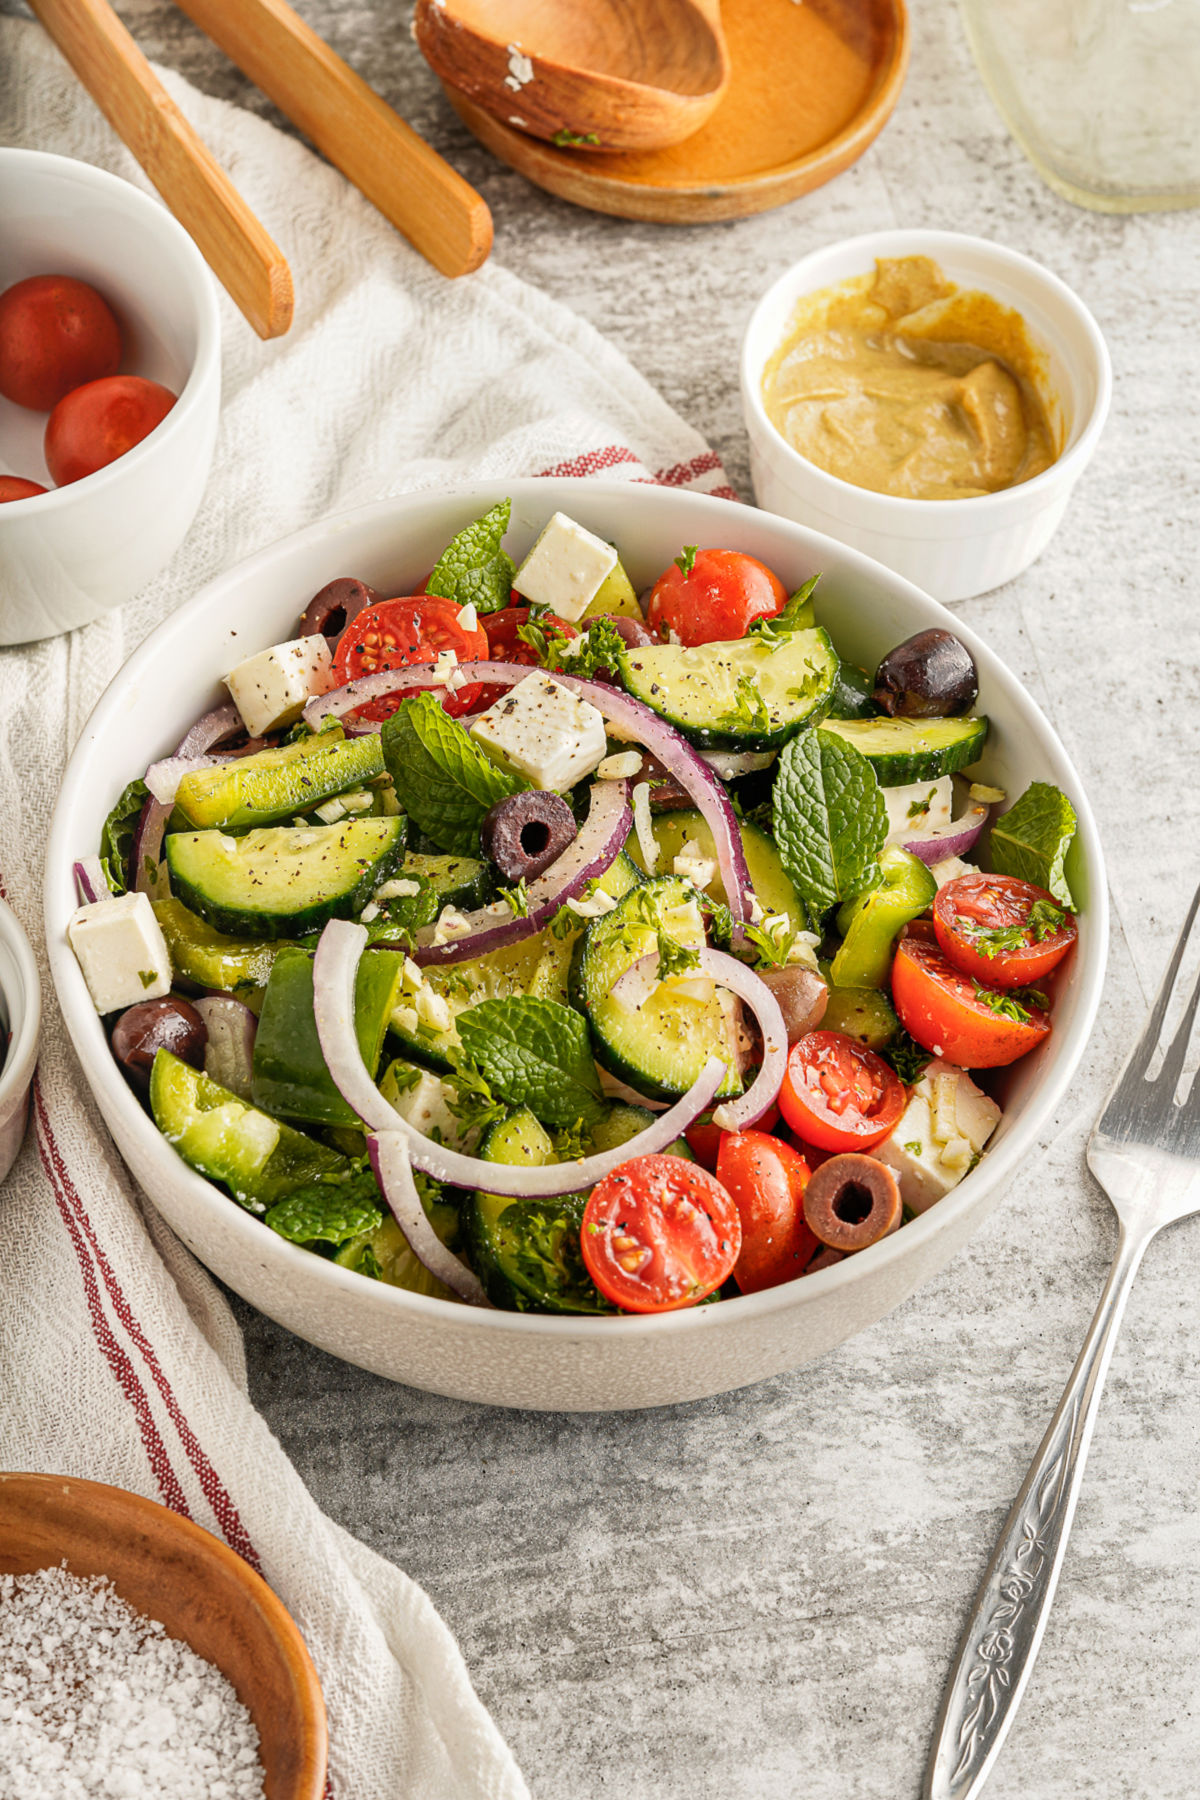 Greek salad in a white bowl with dressing ingredients in background.